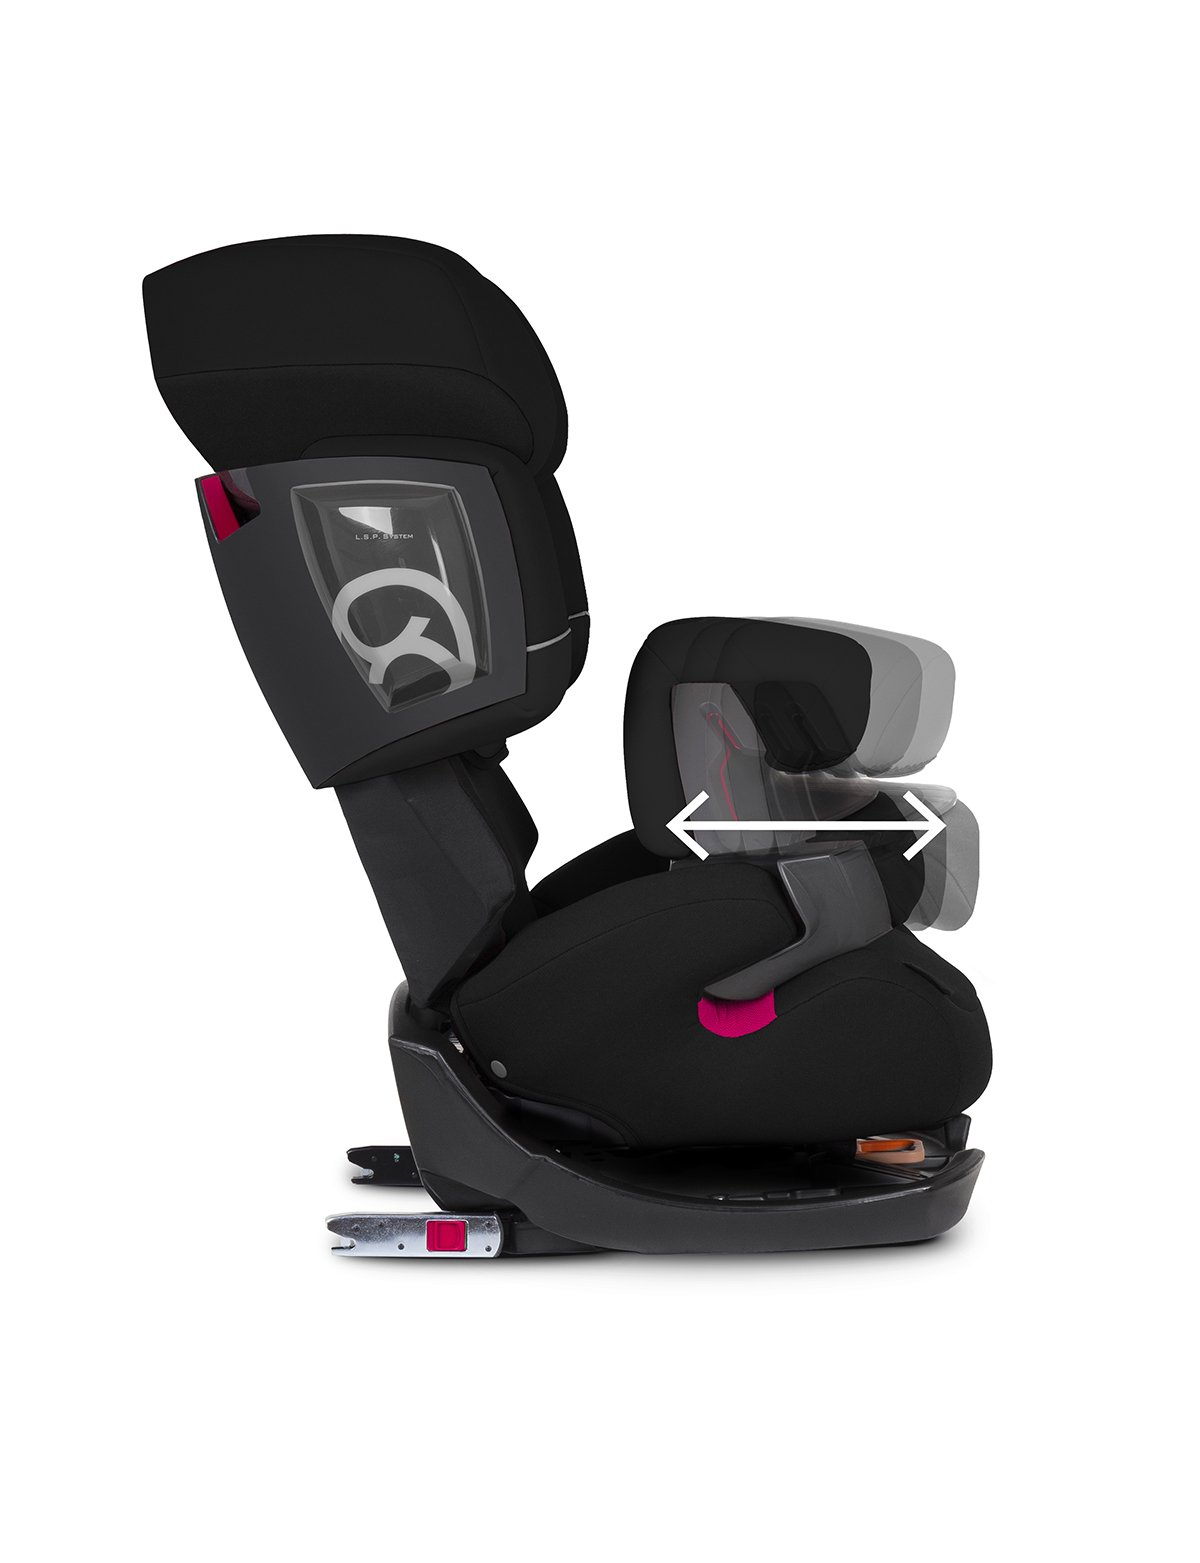 CYBEX Silver Pallas 2-Fix 2-in-1 Child's Car Seat, For Cars with and without ISOFIX, Group 1/2/3 (9-36 kg), From approx. 9 Months to approx. 12 Years, Pure Black  Adjustable safety cushion: More comfort and freedom of movement 2-in-1 seat: Can be used for up to 11 years 5